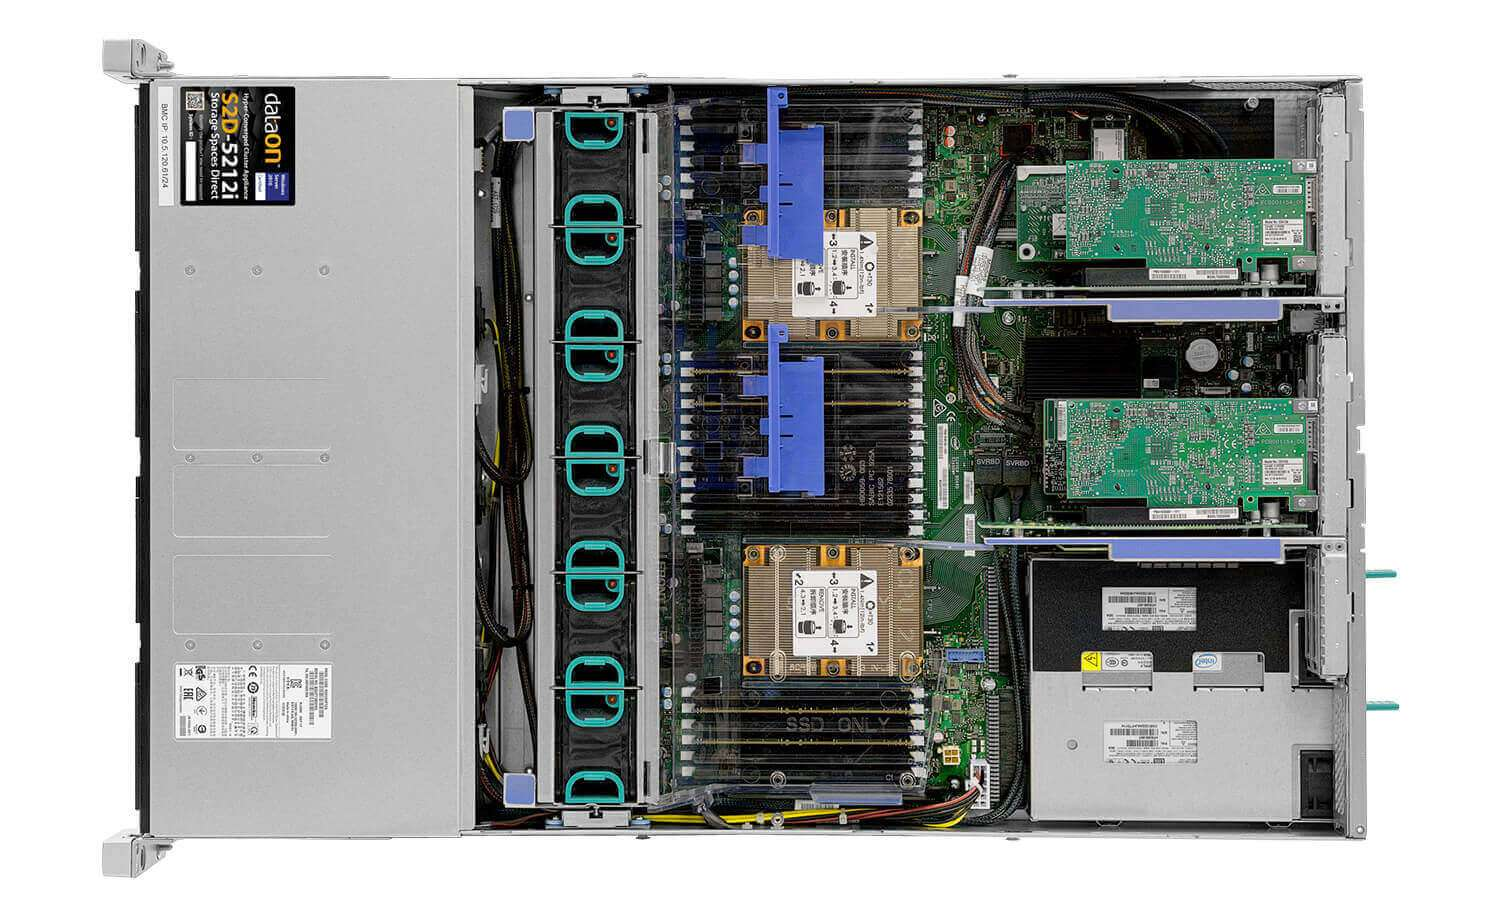 allsystems-producten-hyperconverged-systems-DataON_S2D-5208i_Top_View